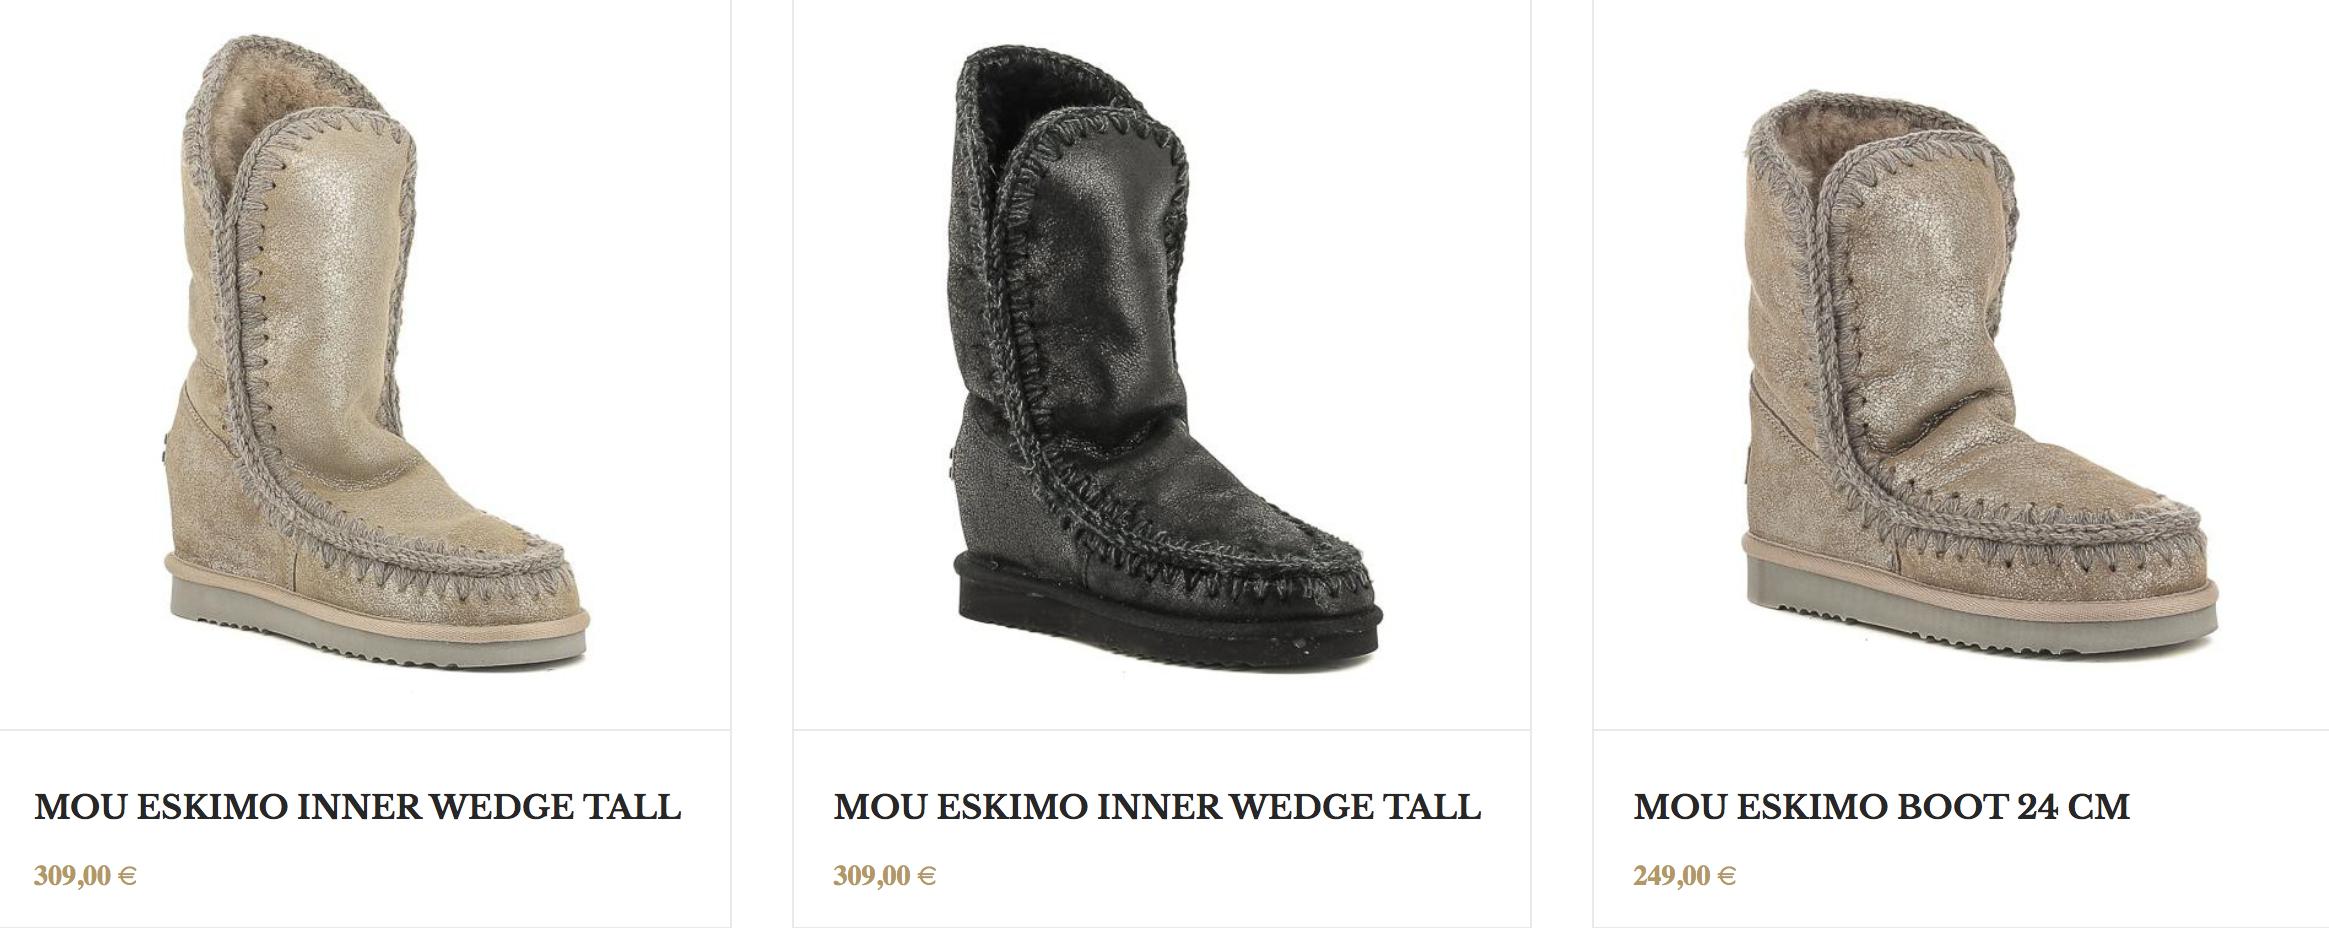 botas mou eskimo inner wedge tall